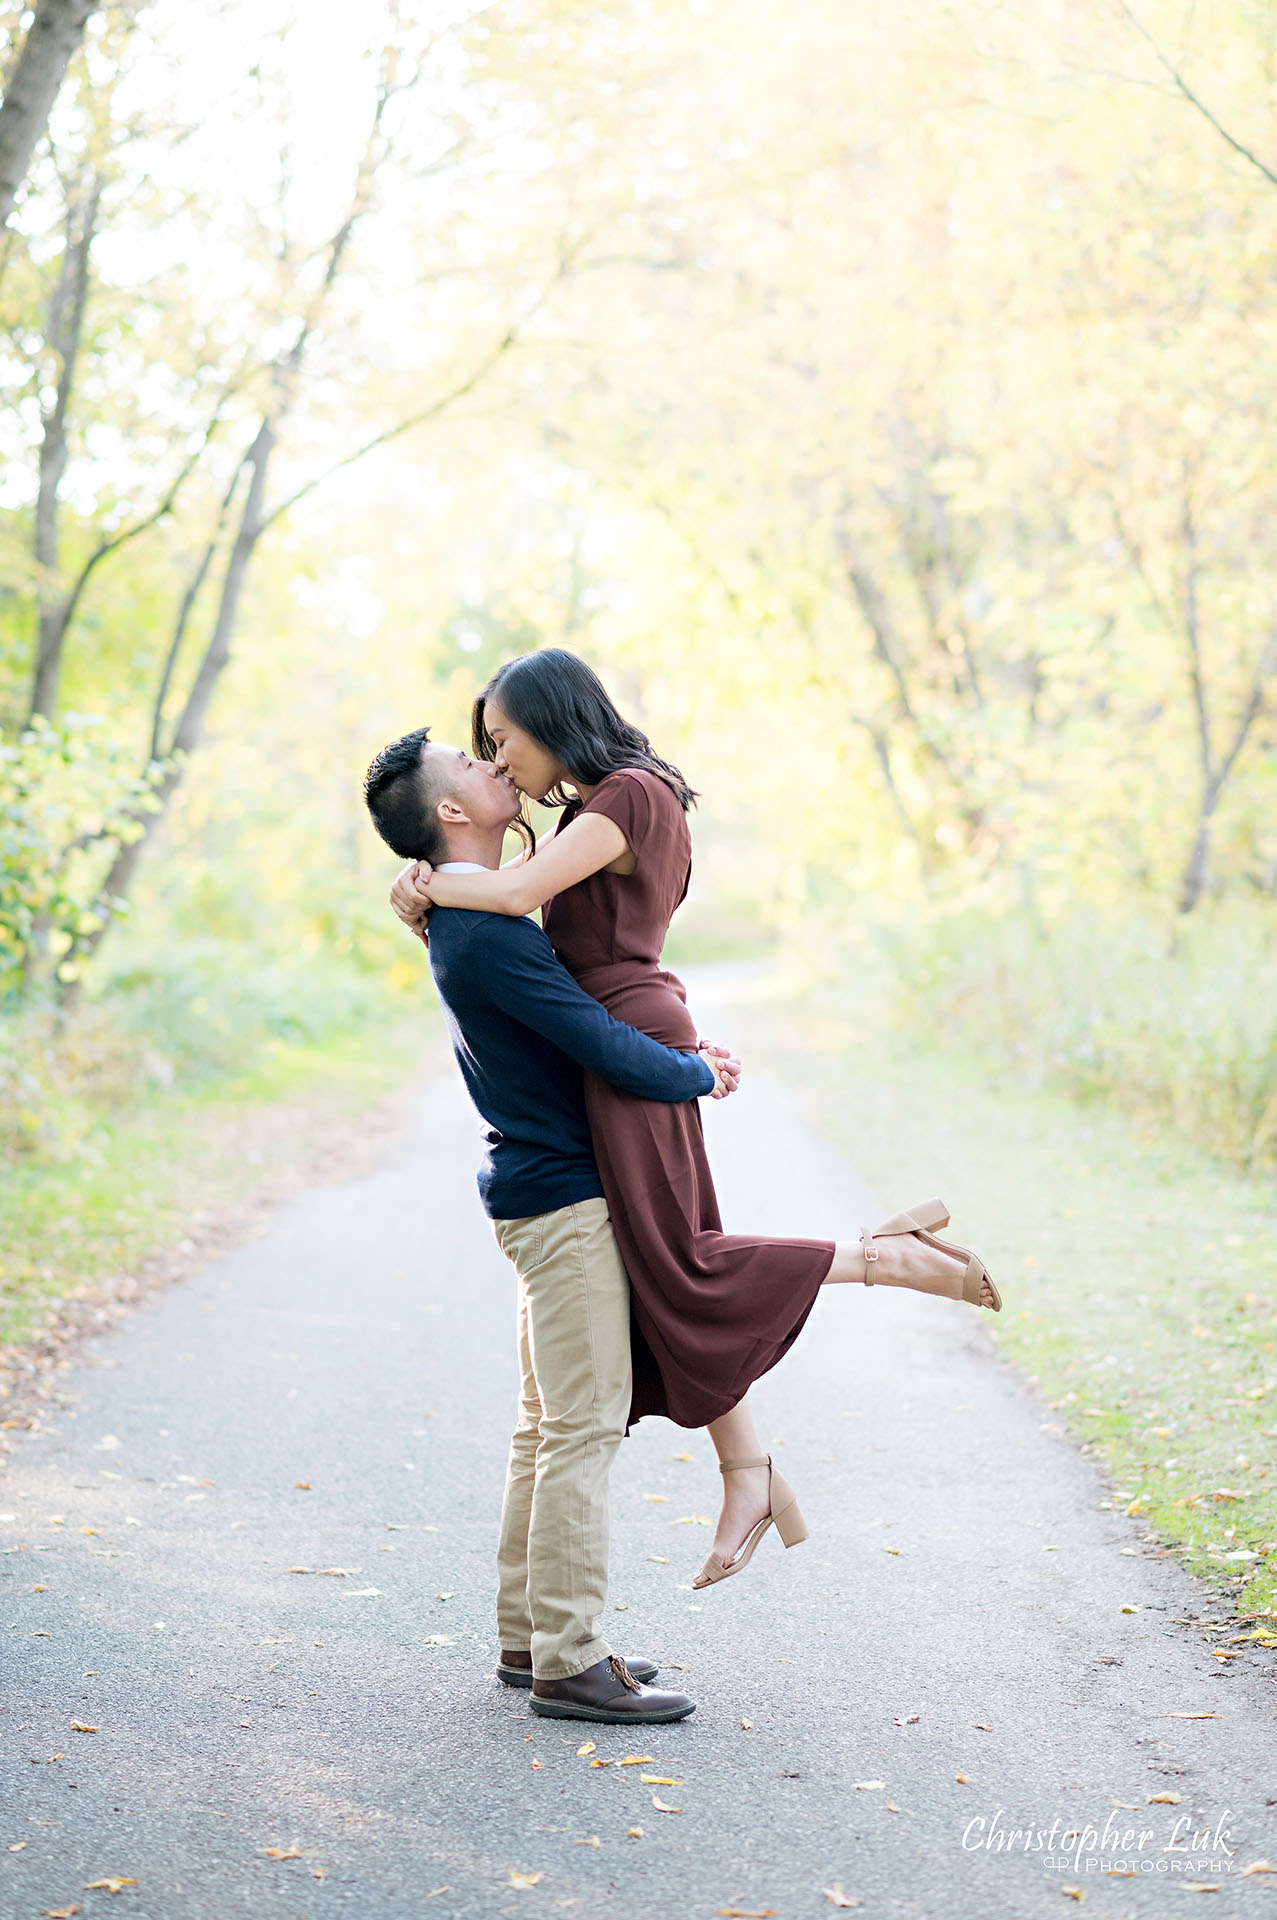 Christopher Luk Toronto Wedding Engagement Session Photographer Autumn Fall Leaves Natural Candid Photojournalistic Bride Groom Holding Hands Walking Together Pathway Hiking Trail Jump Hug Lift Carry Kiss